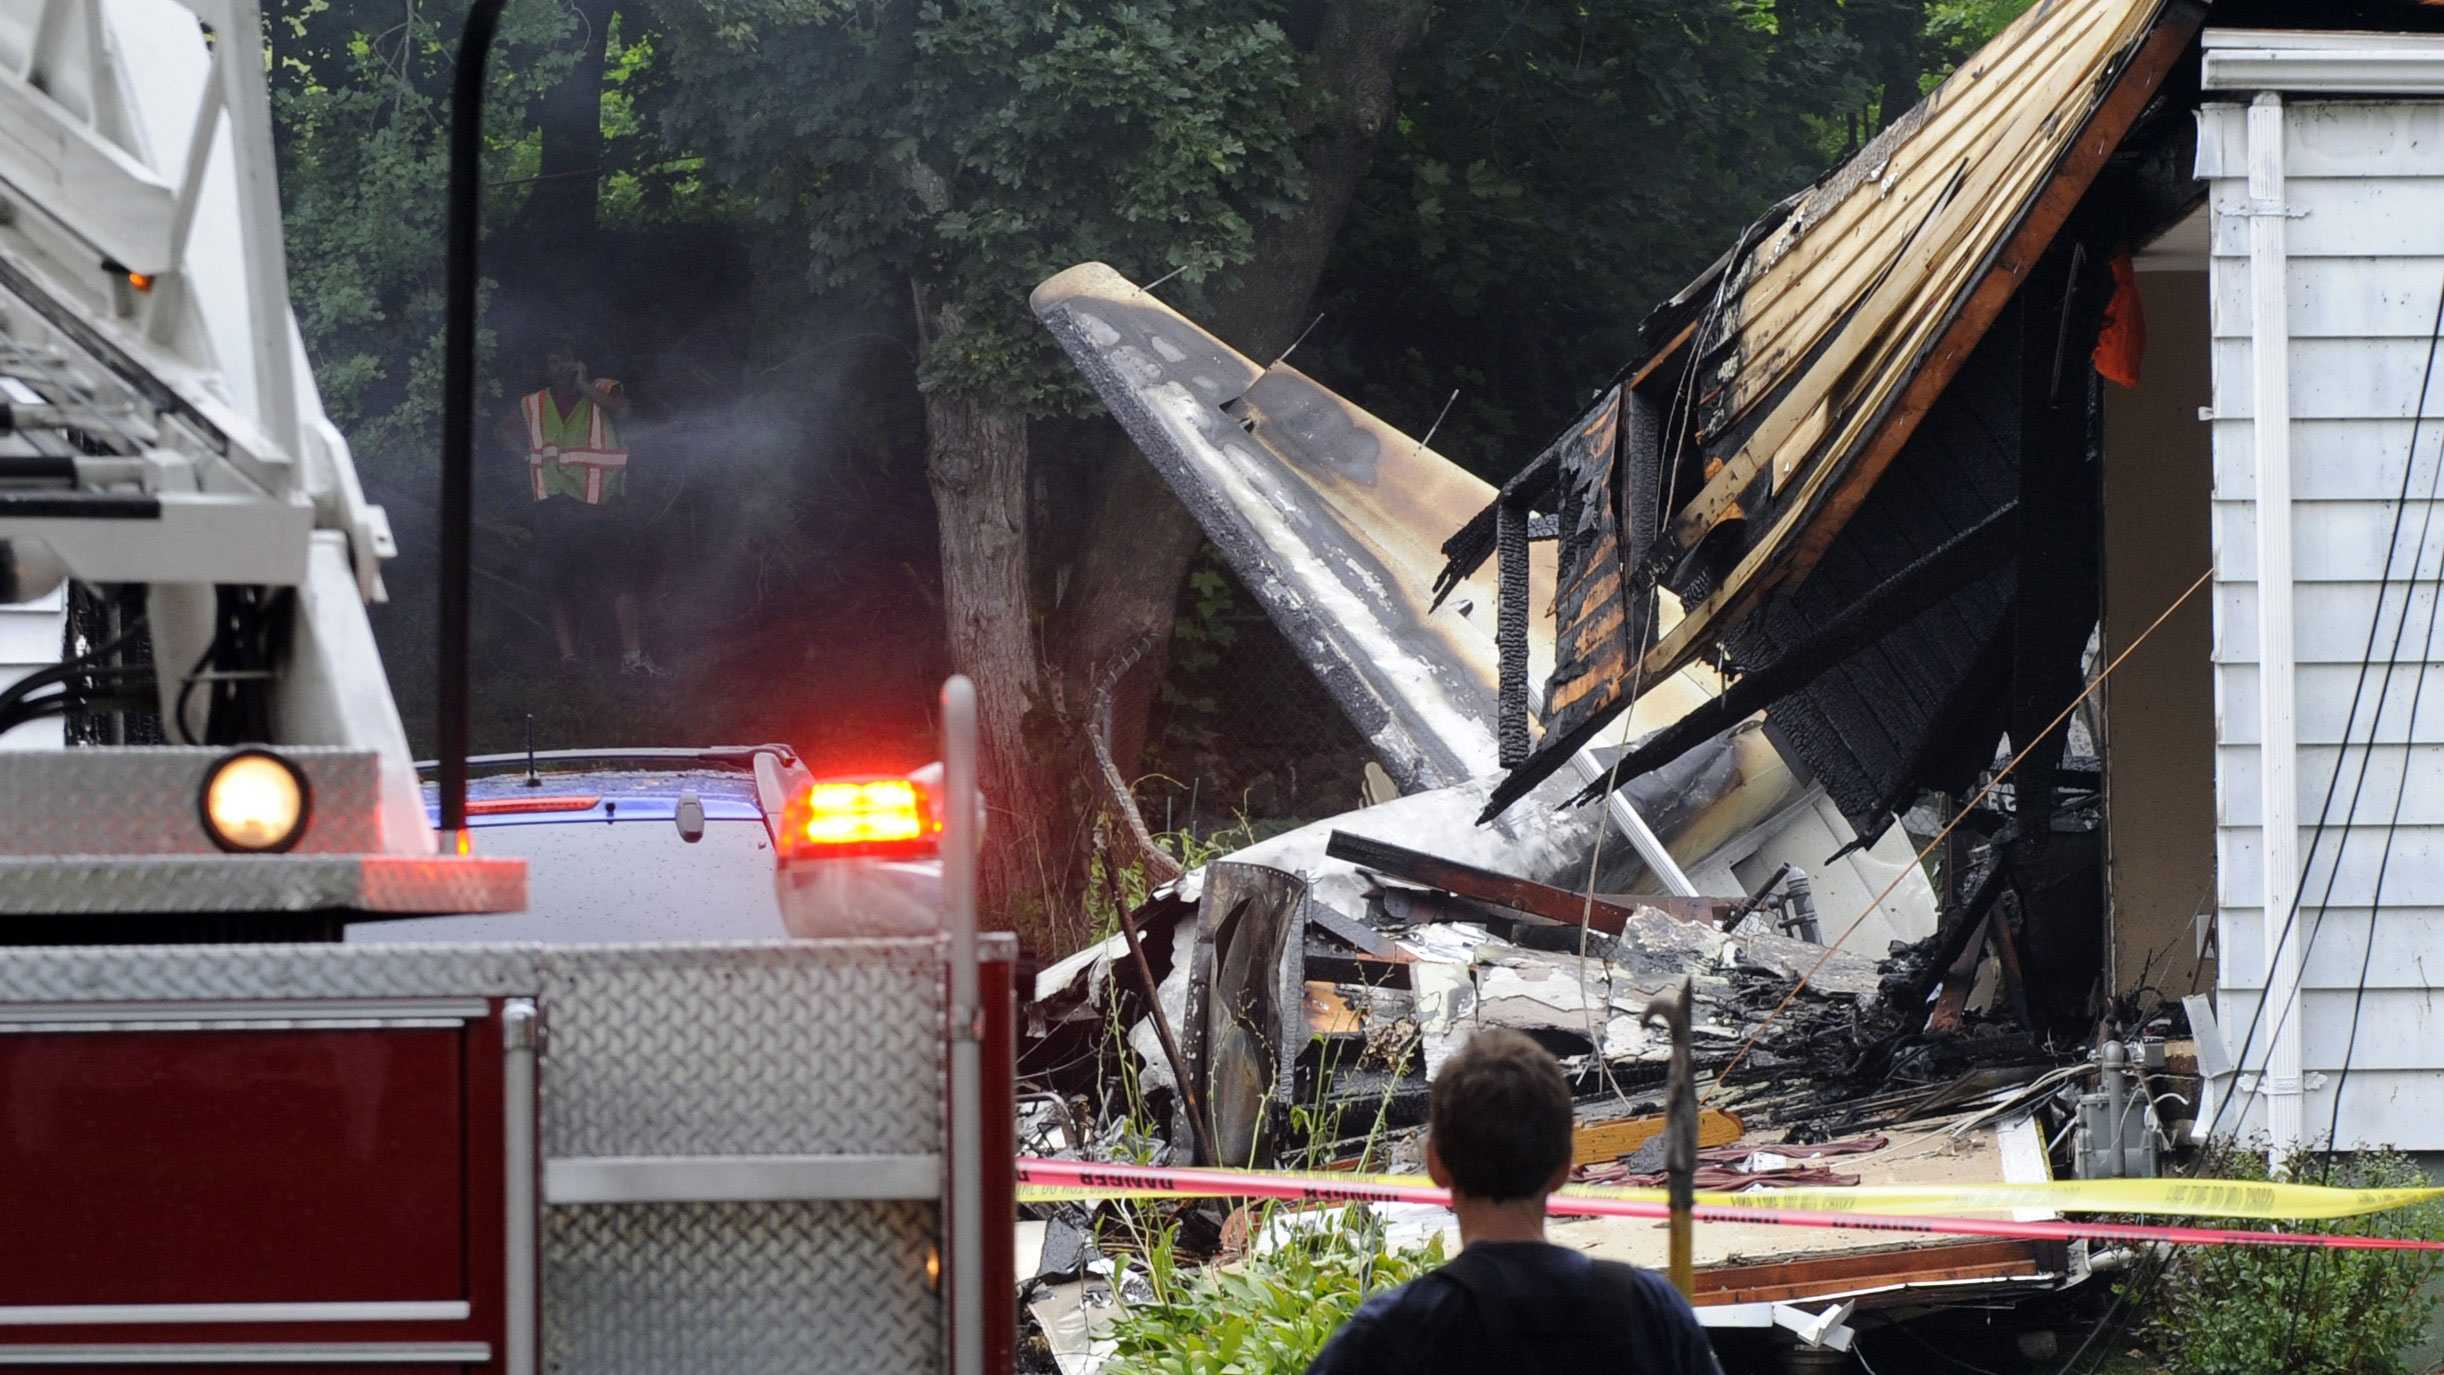 A firefighter surveys the scene of a small plane crash, Friday, Aug. 9, 2013, in East Haven, Conn. The multi-engine, propeller-driven plane plunged into a working-class suburban neighborhood near Tweed New Haven Airport, on Friday.